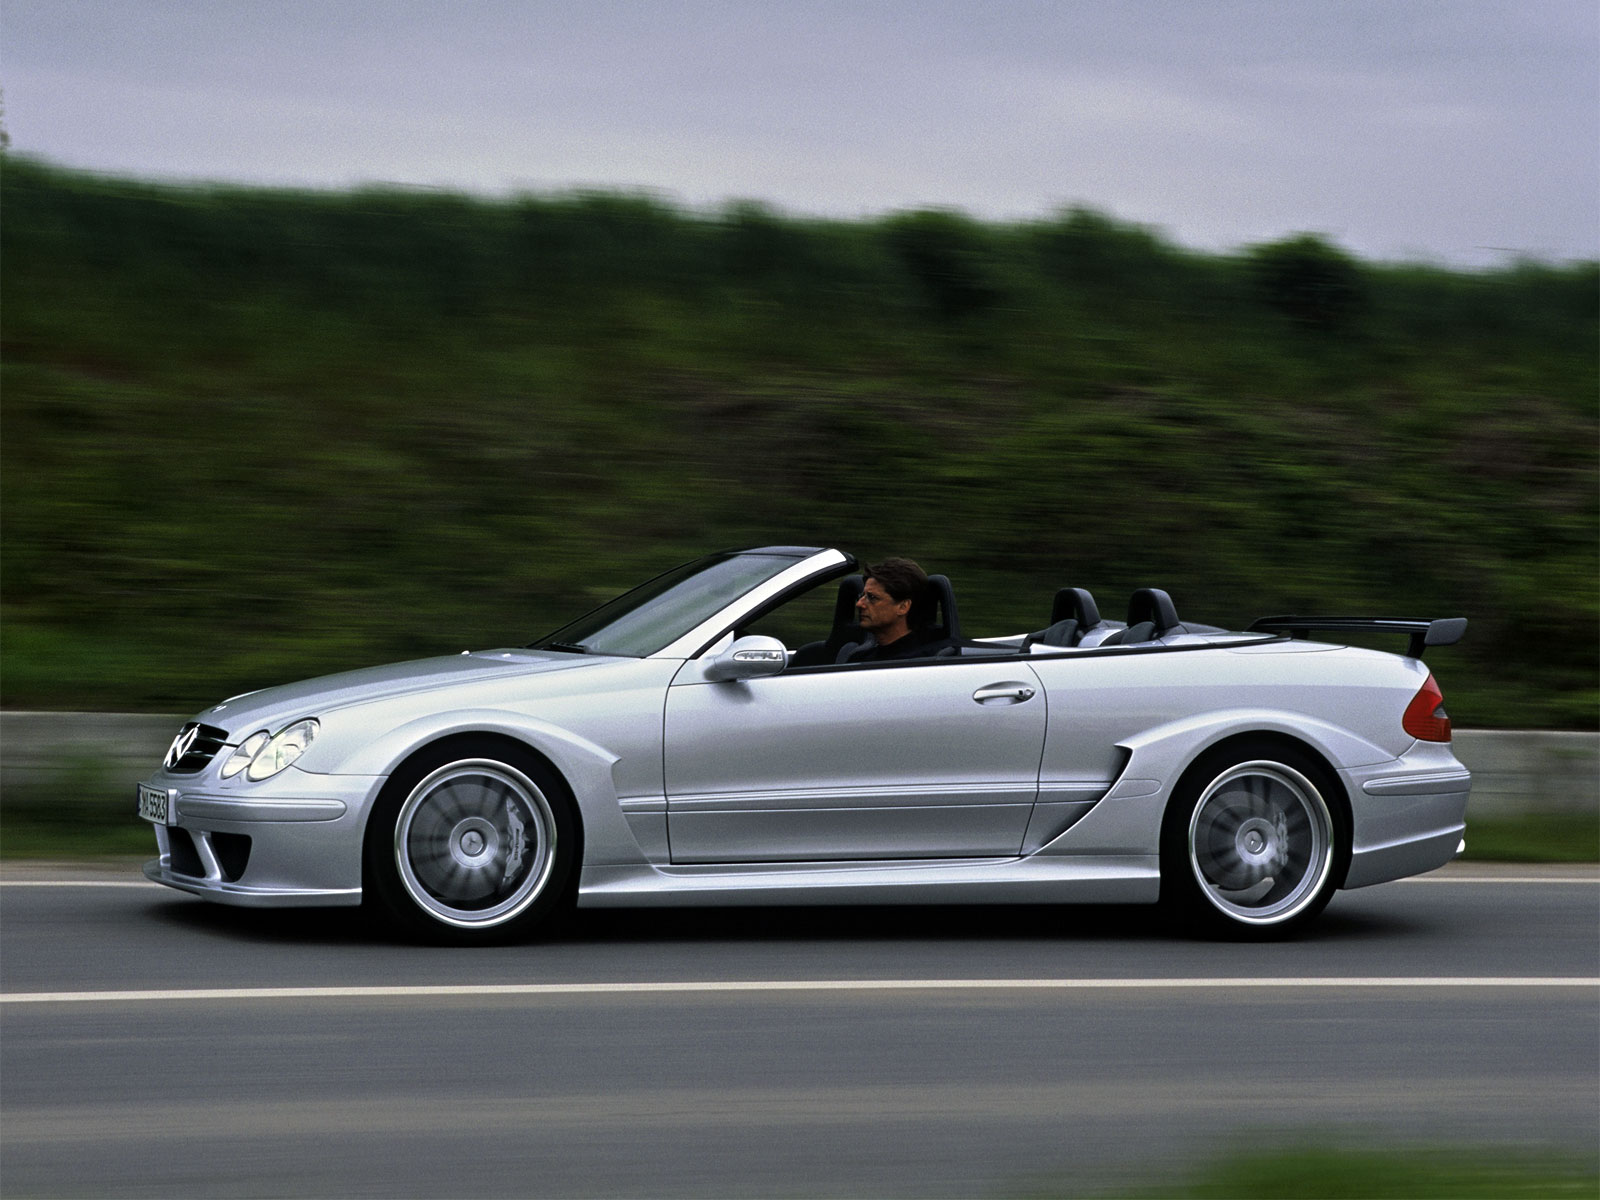 takeyoshi images mercedes benz clk dtm amg cabriolet. Black Bedroom Furniture Sets. Home Design Ideas